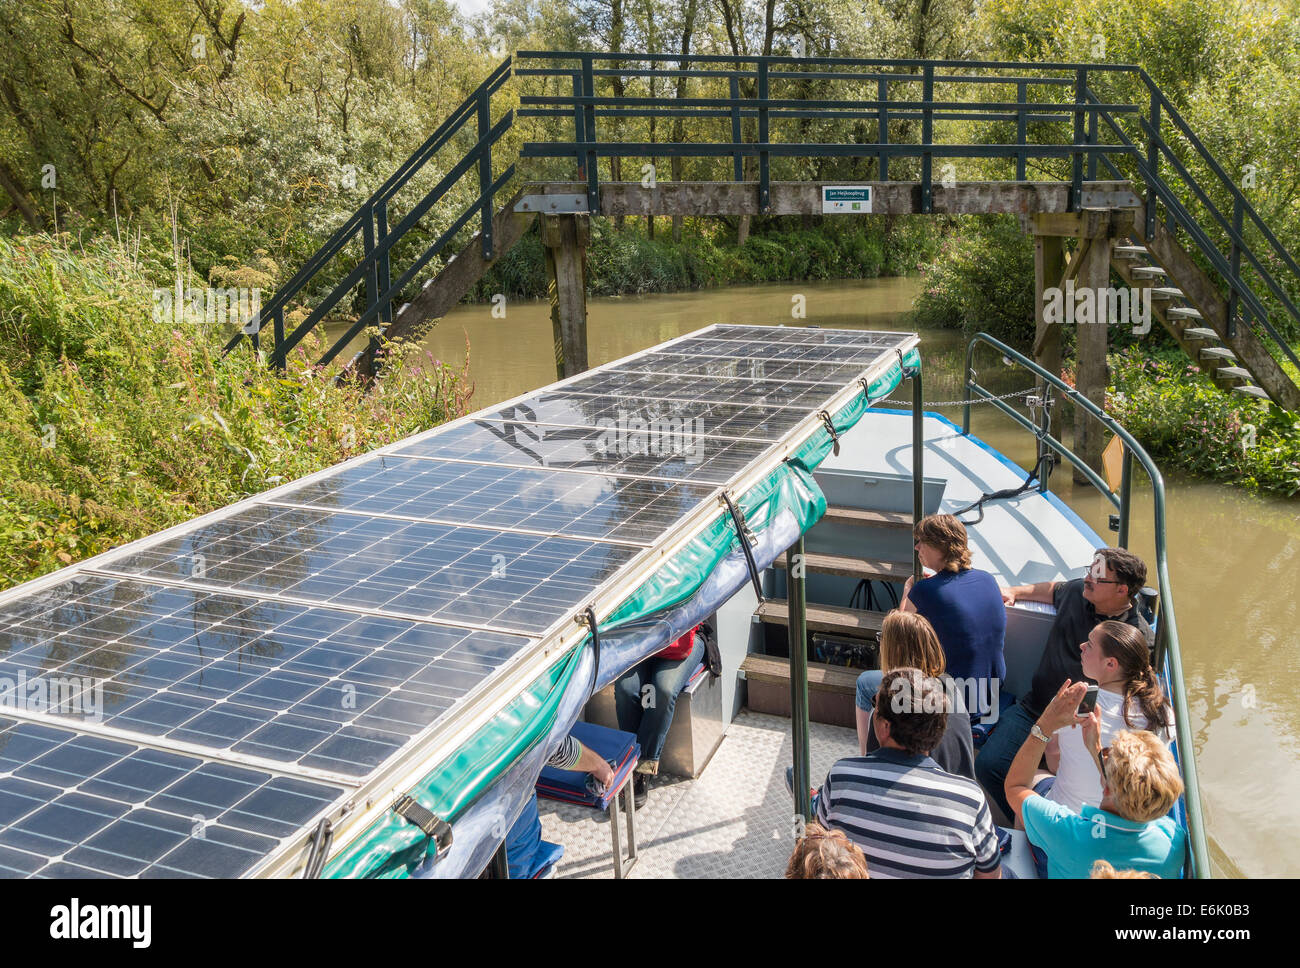 Solar powered boat with visitors in Biesbosch National Park freshwater tidal wetland in the Netherlands. - Stock Image